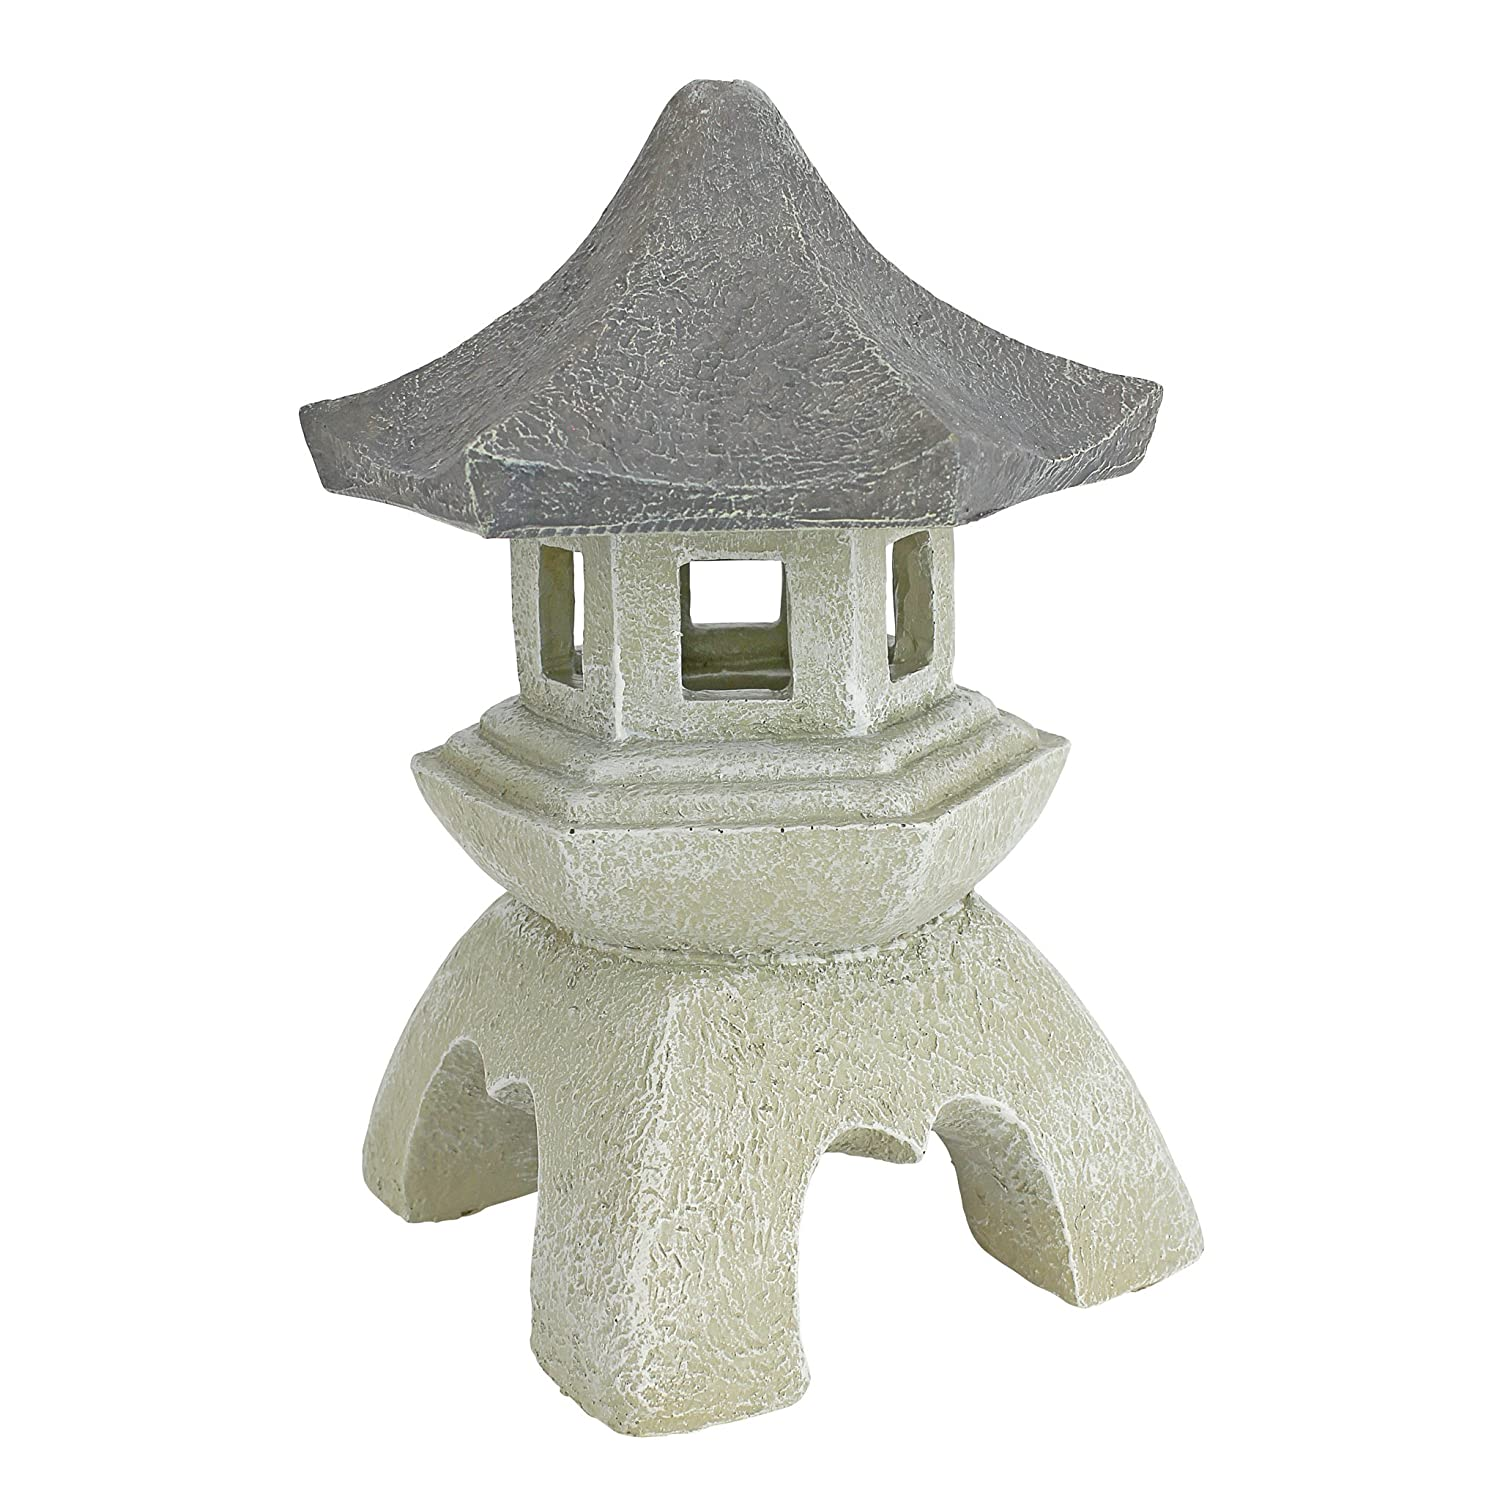 Japanese Pagoda Lantern Sculpture, Medium